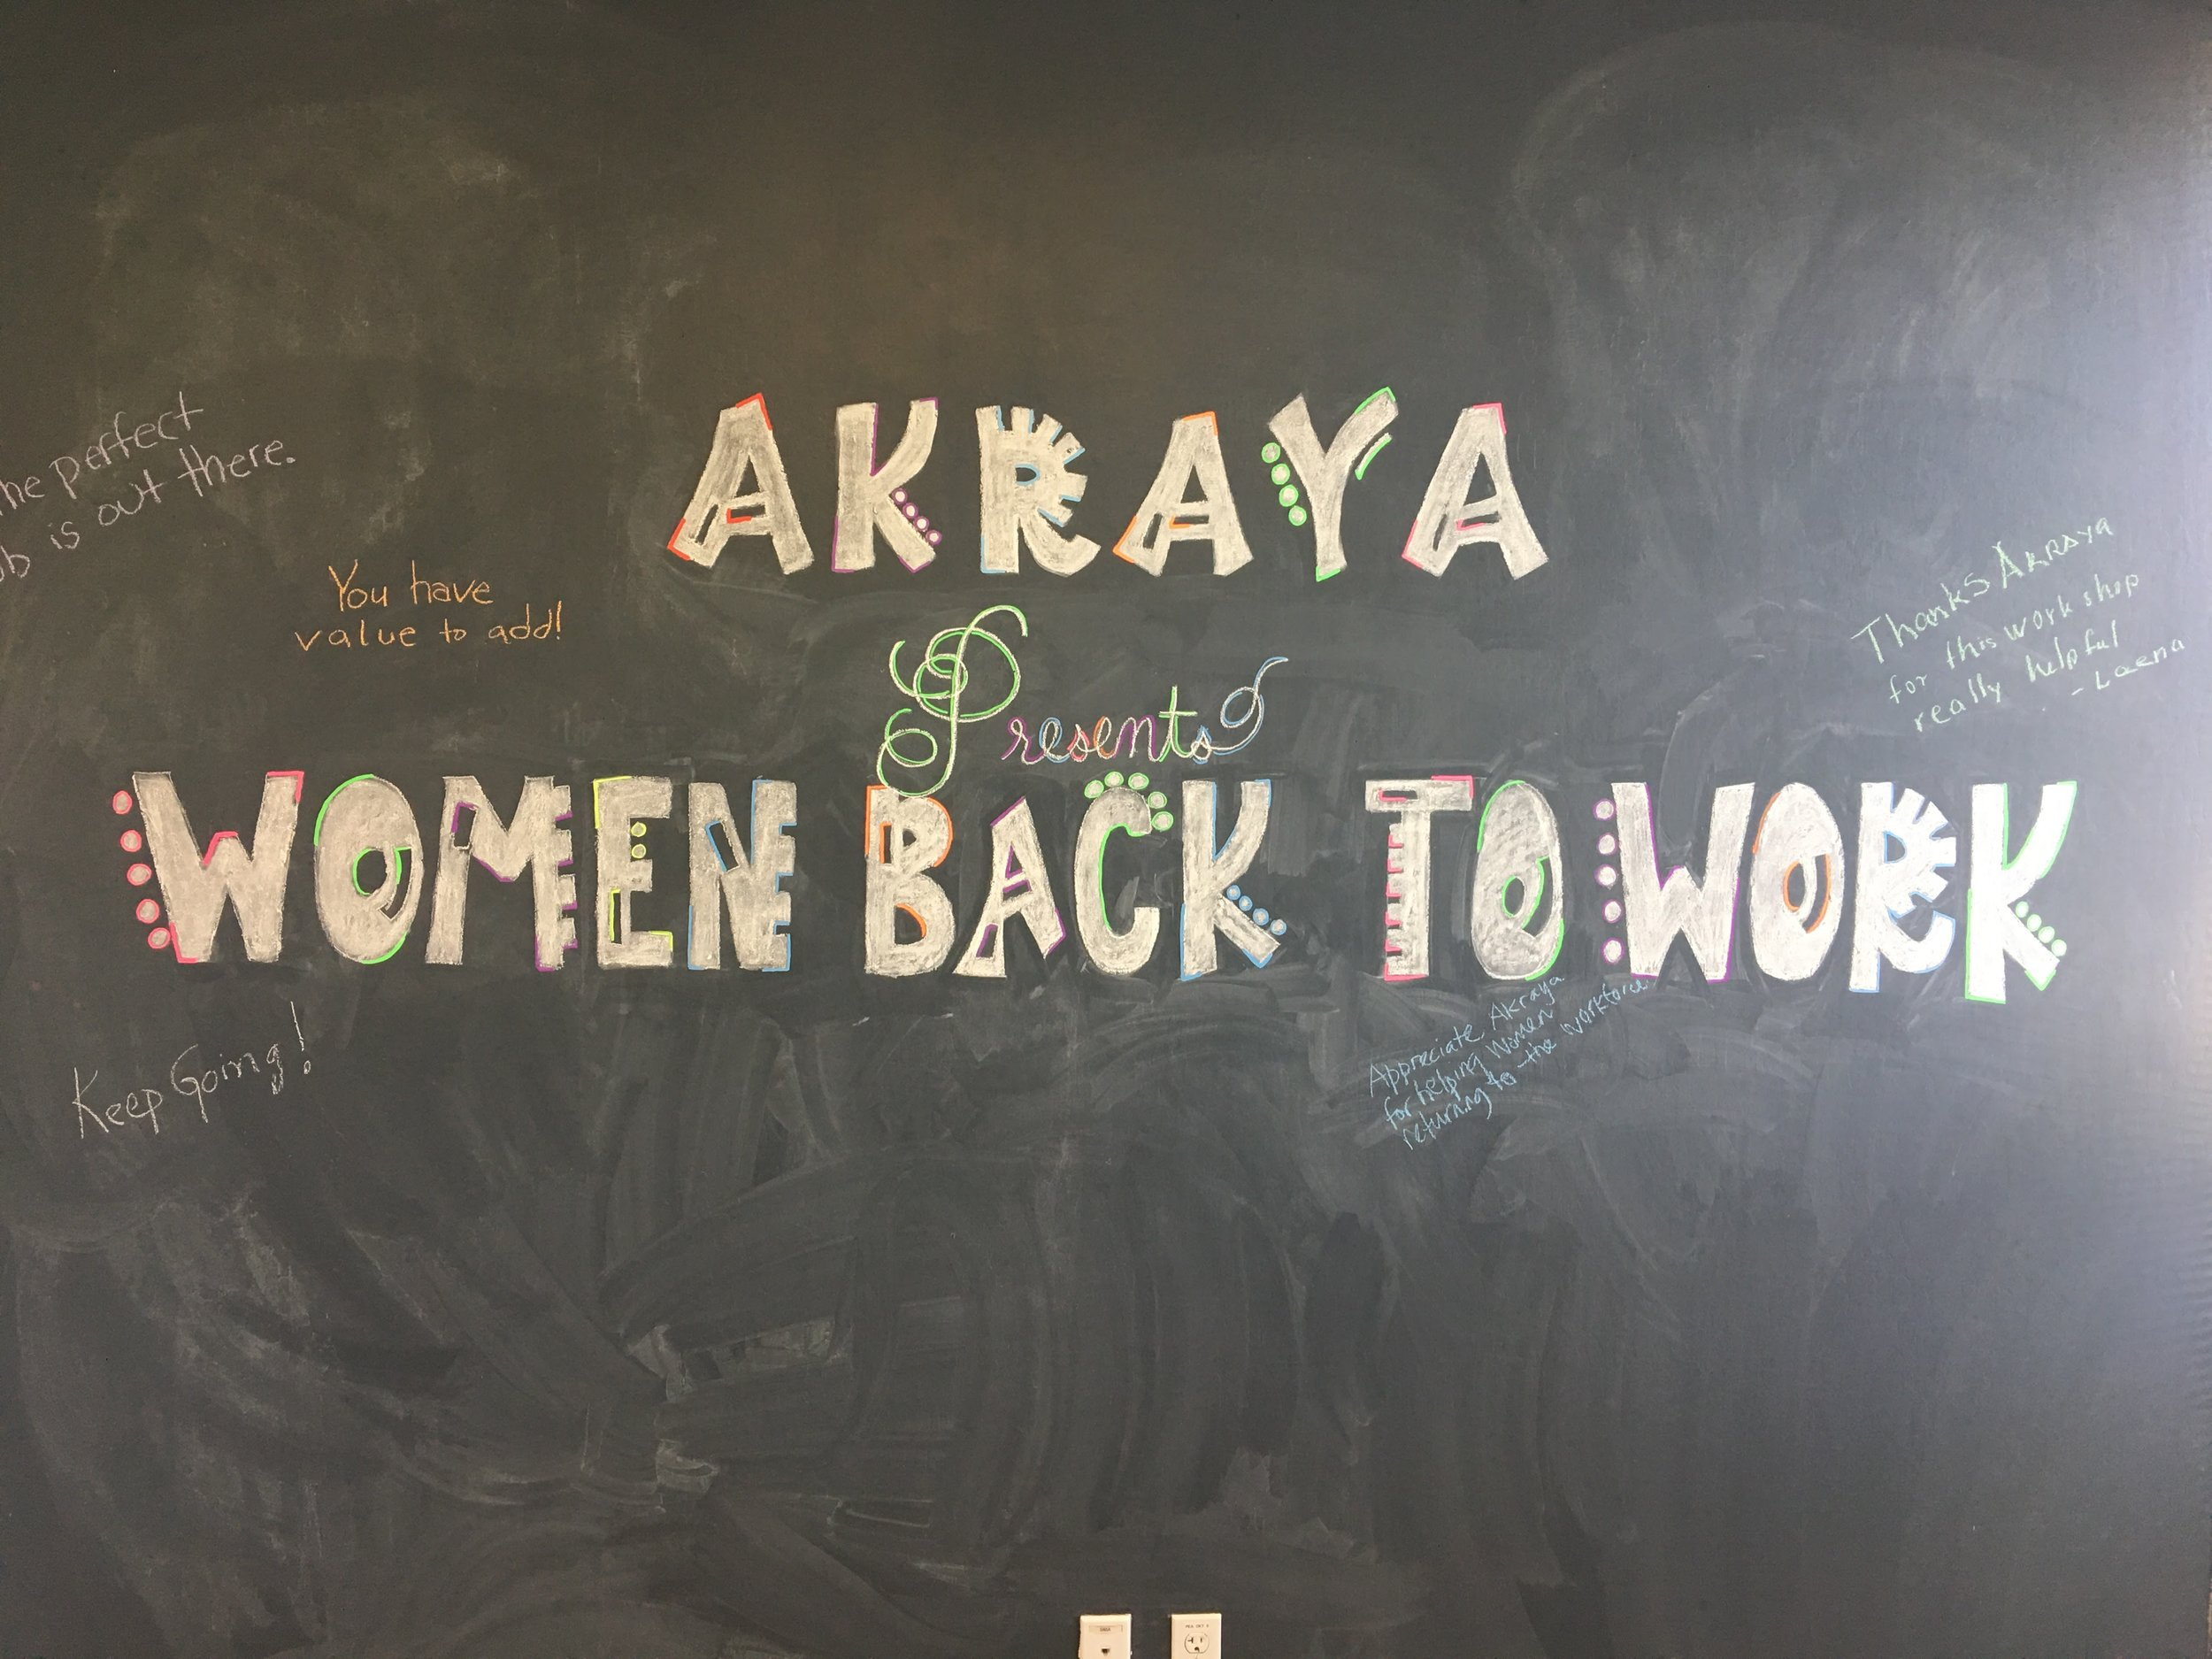 Back To Work : Women back to work